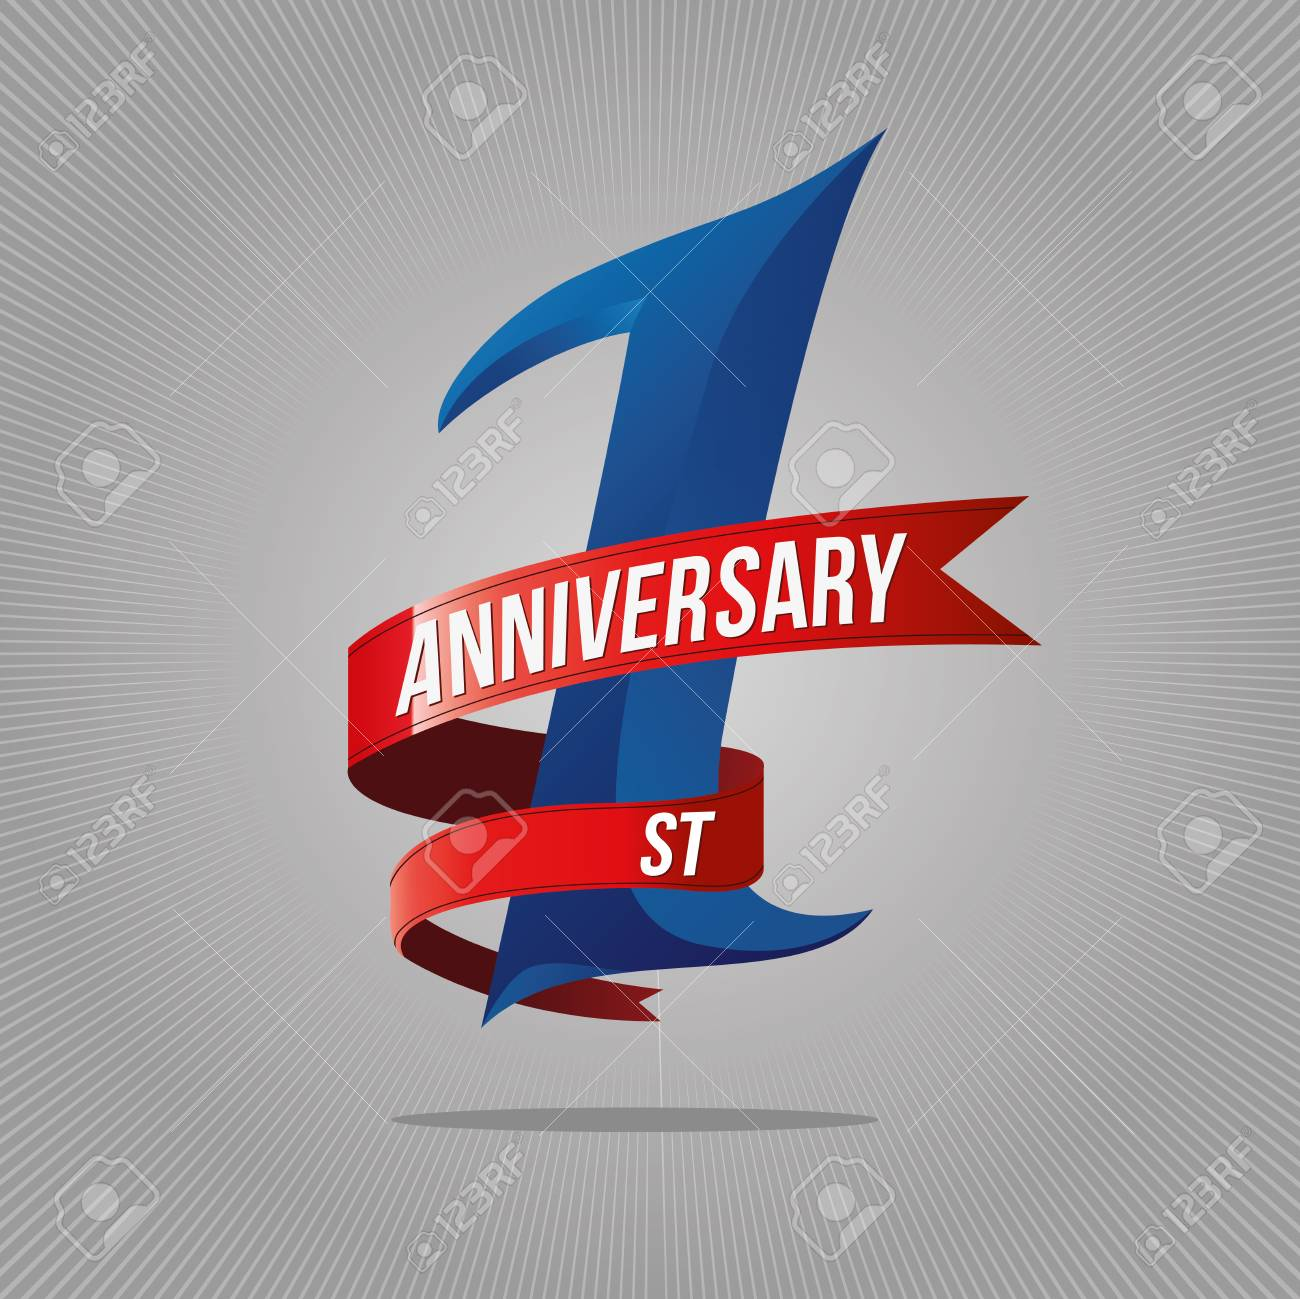 one year anniversary celebration logotype 1st anniversary logo royalty free cliparts vectors and stock illustration image 87281587 one year anniversary celebration logotype 1st anniversary logo